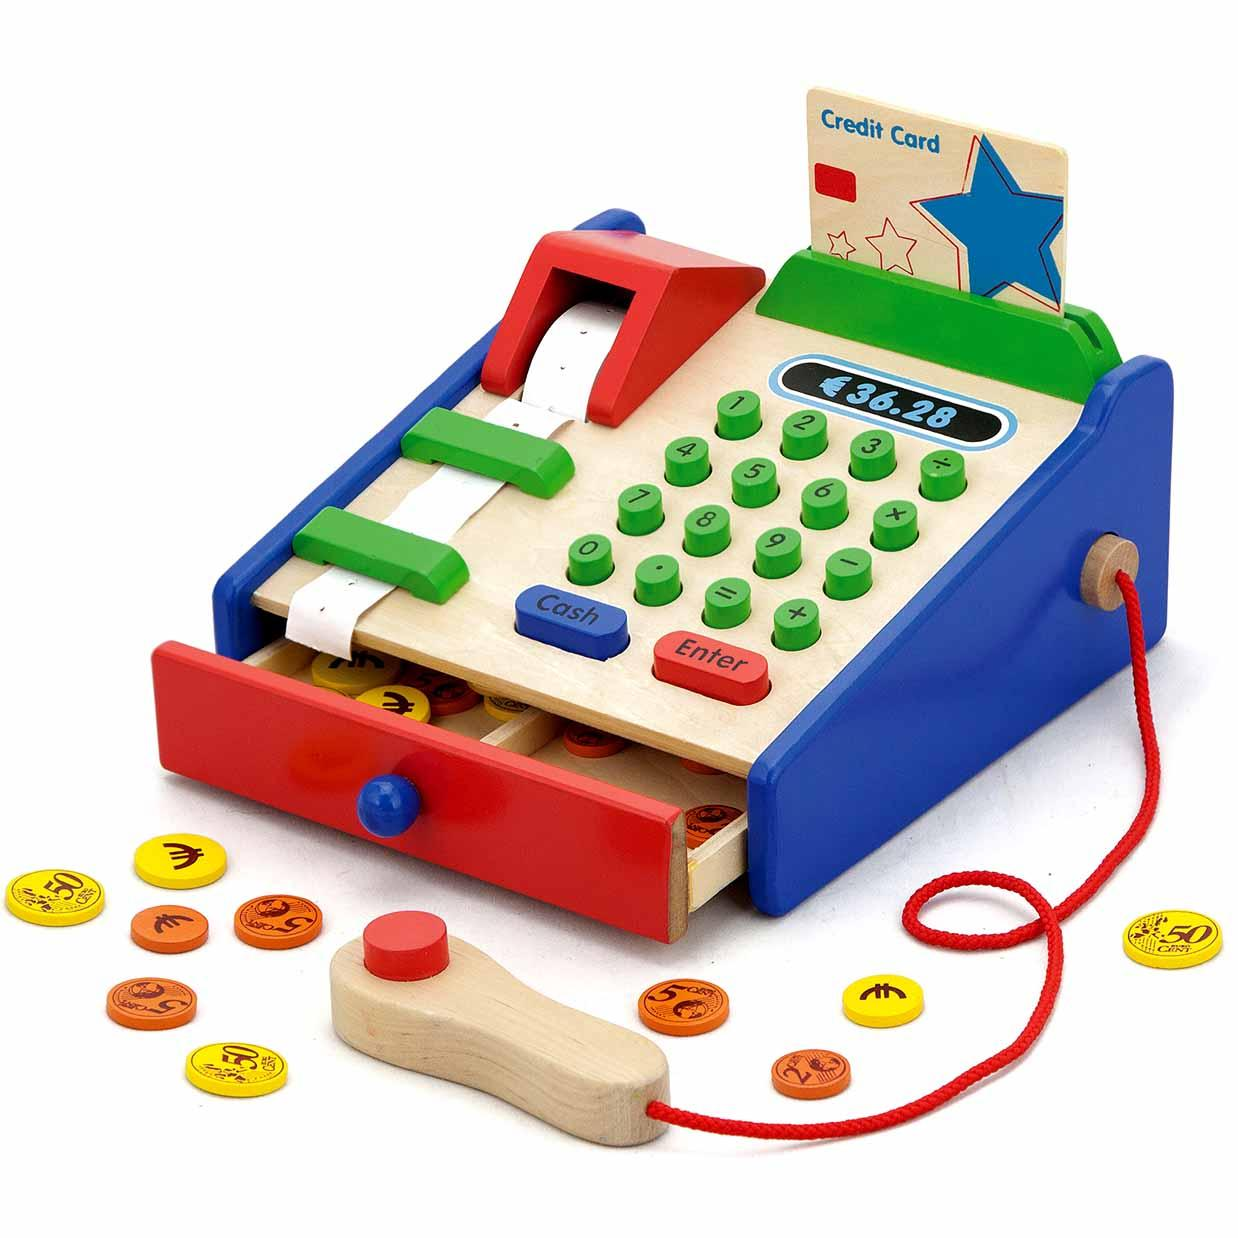 ... Wooden Checkout Cash Register Shop Supermarket Till Pretend Play Toy